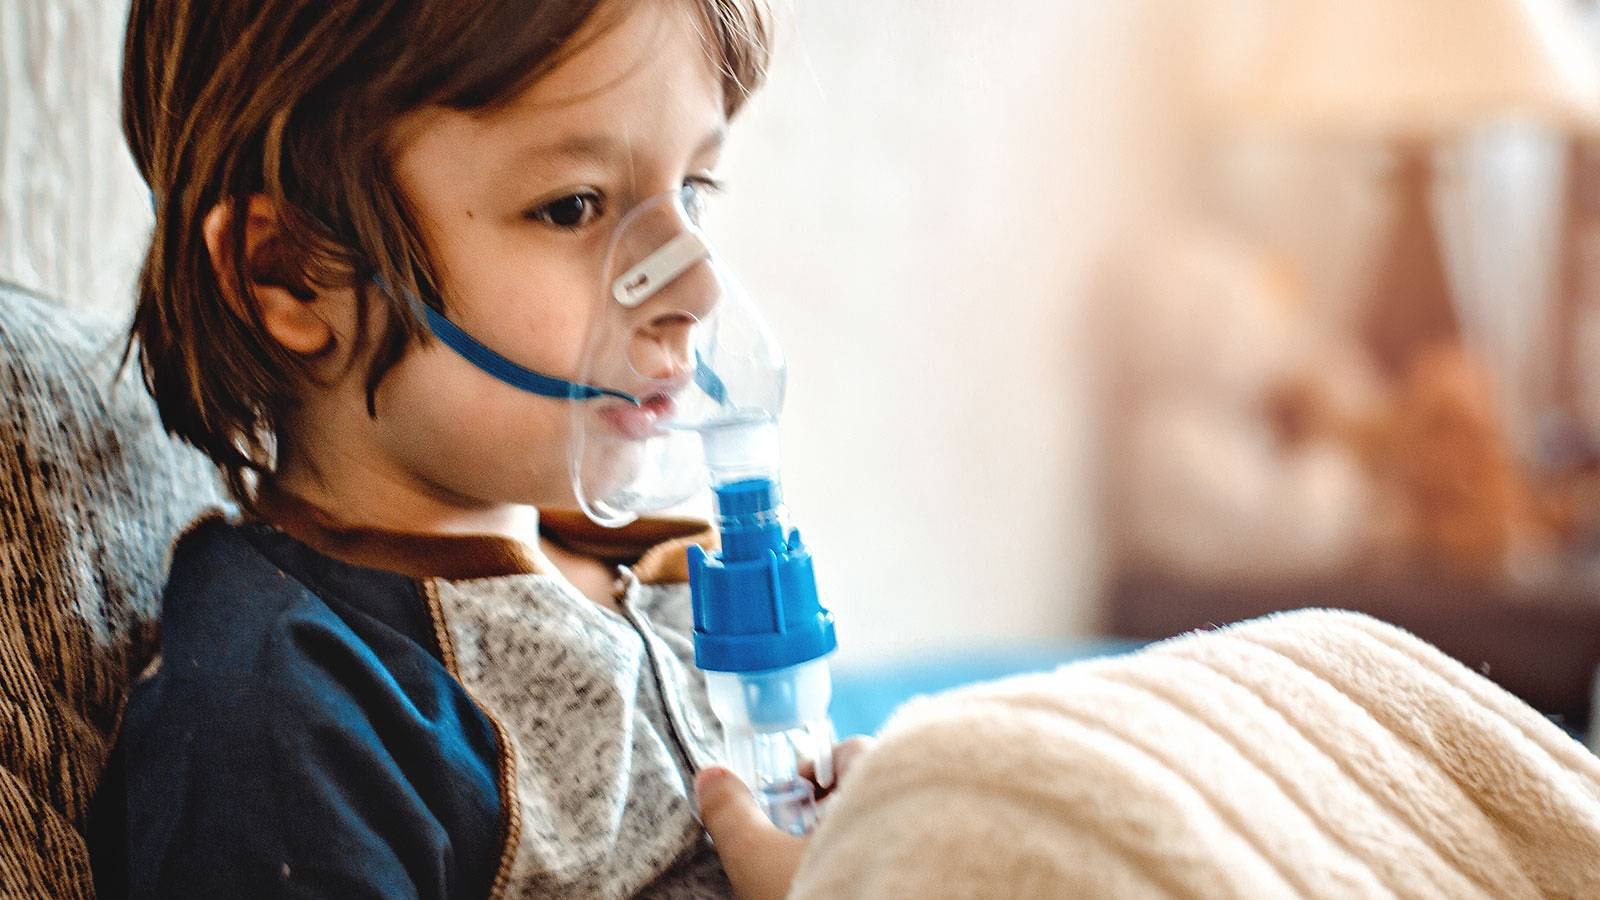 Tots-EXPERT-ADVICE-Does-my-child-have-asthma-1